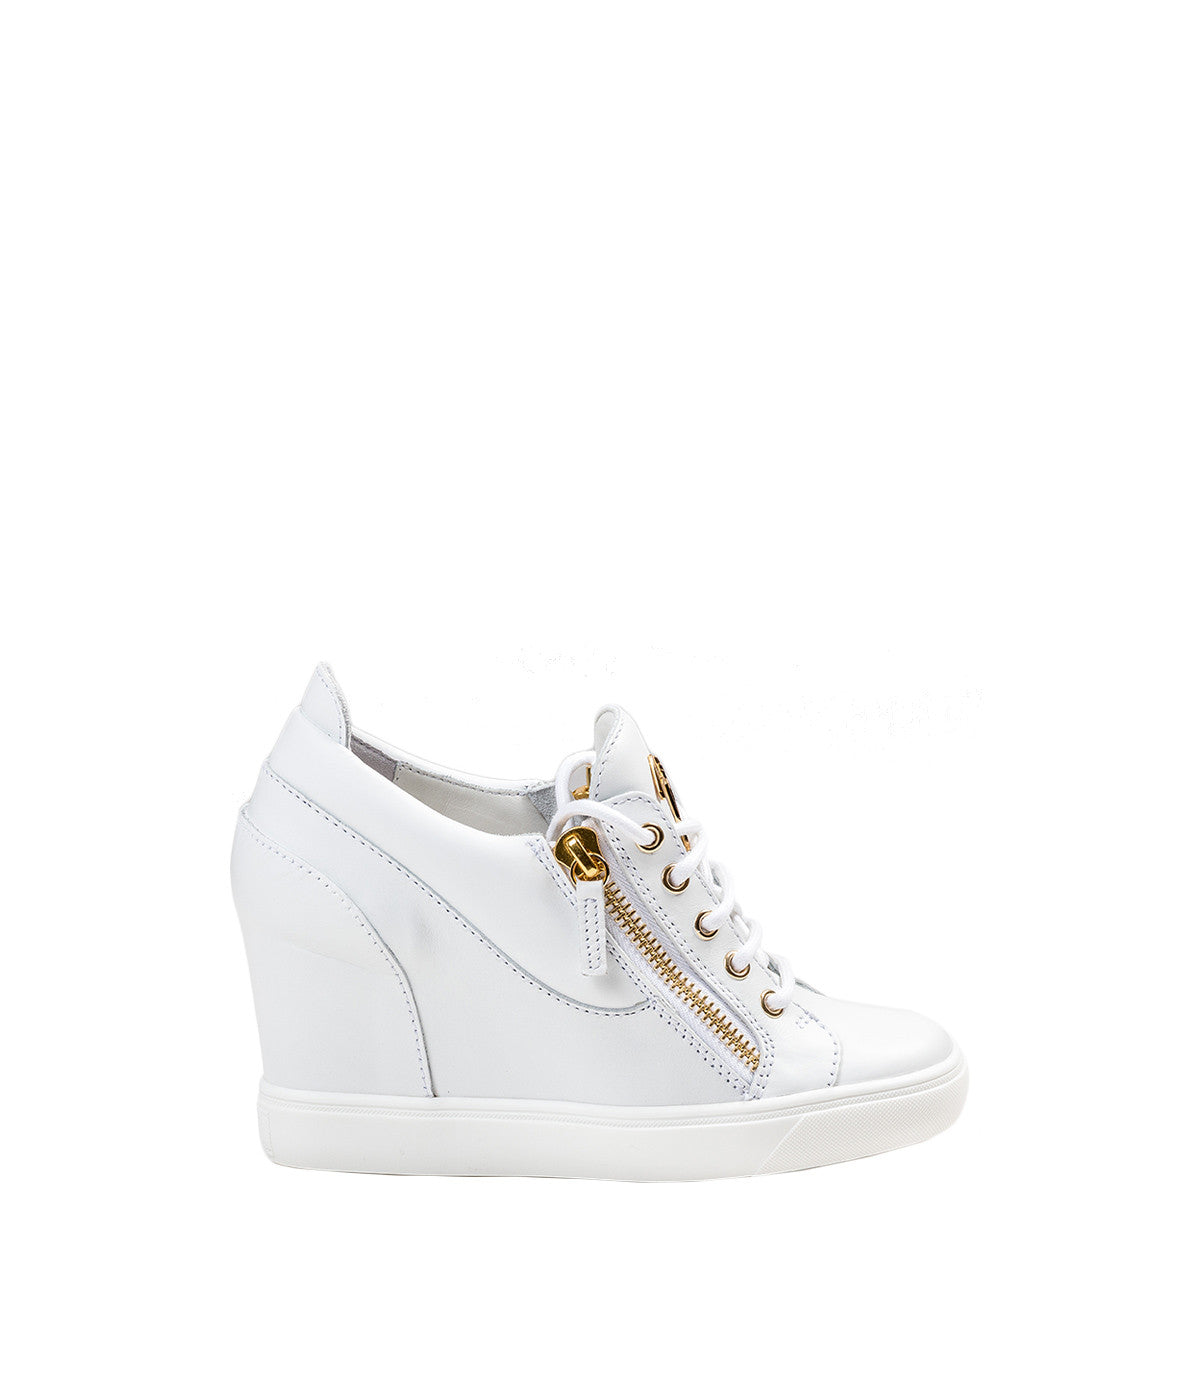 Sonya Wedge Sneakers